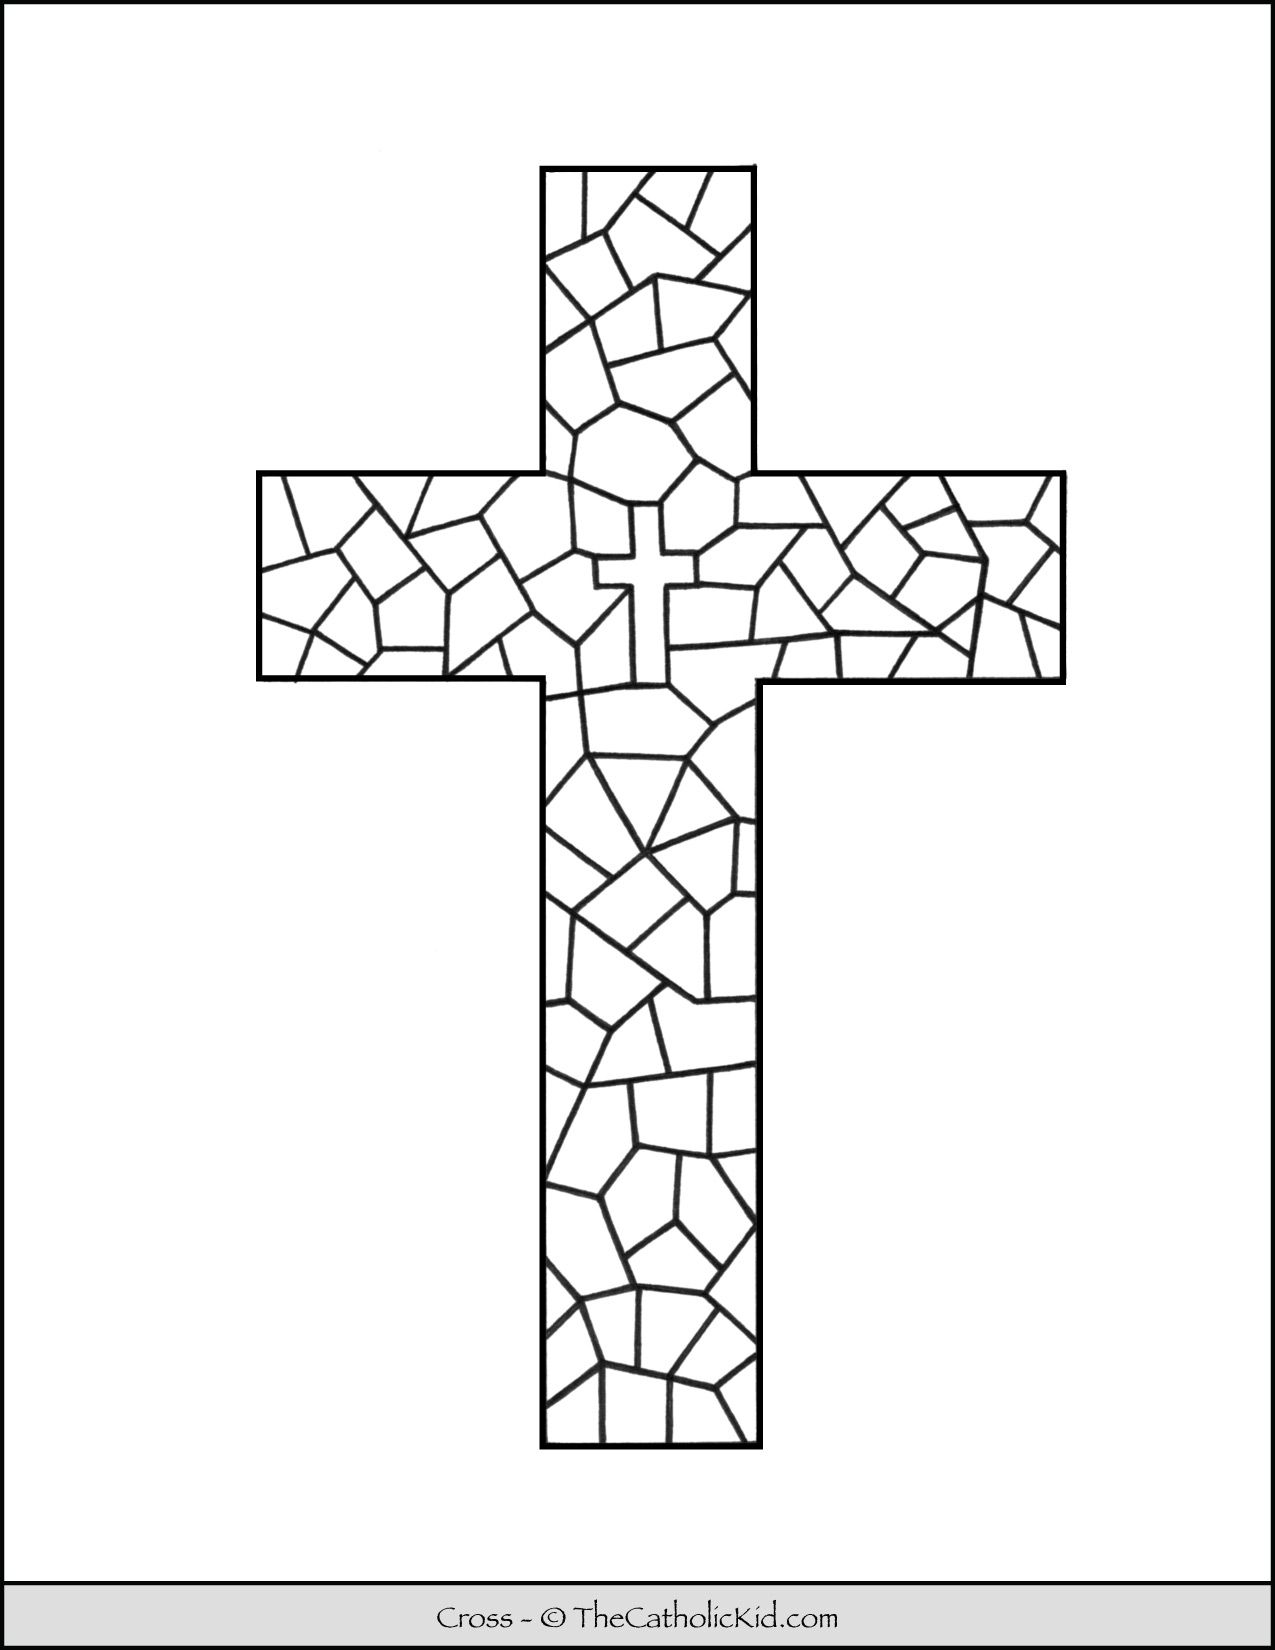 Pin by Sharon Breidenbach on Stain glass cross Stain